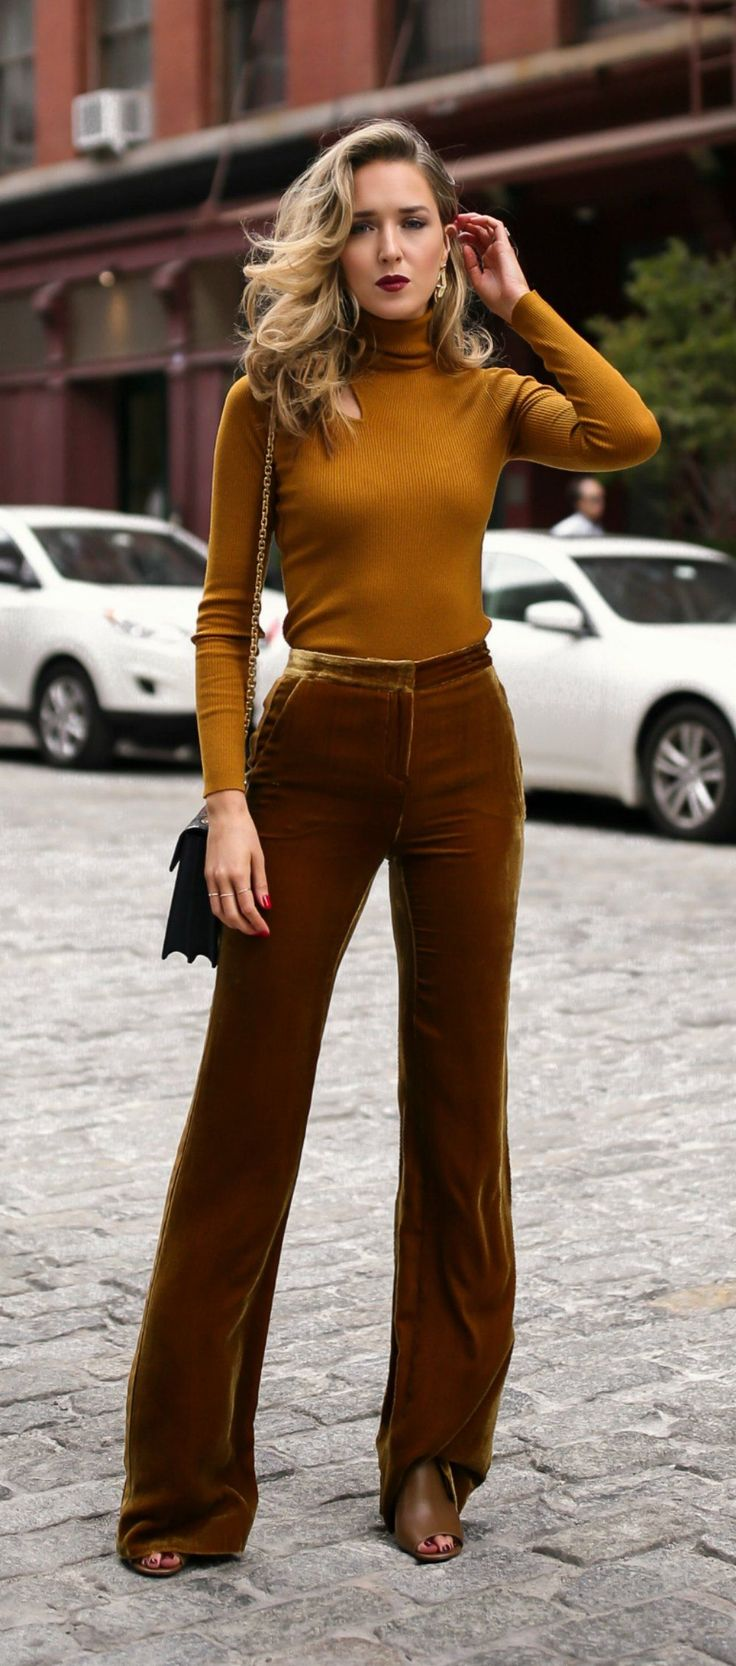 Click for outfit details!  Marigold cut out long sleeve turtleneck, velvet gold tuxedo striped wide leg trousers, multi jewel toned handbag and sculptural gold earrings {ALC, Tory Burch, Veronica Beard, Amber Sceats}